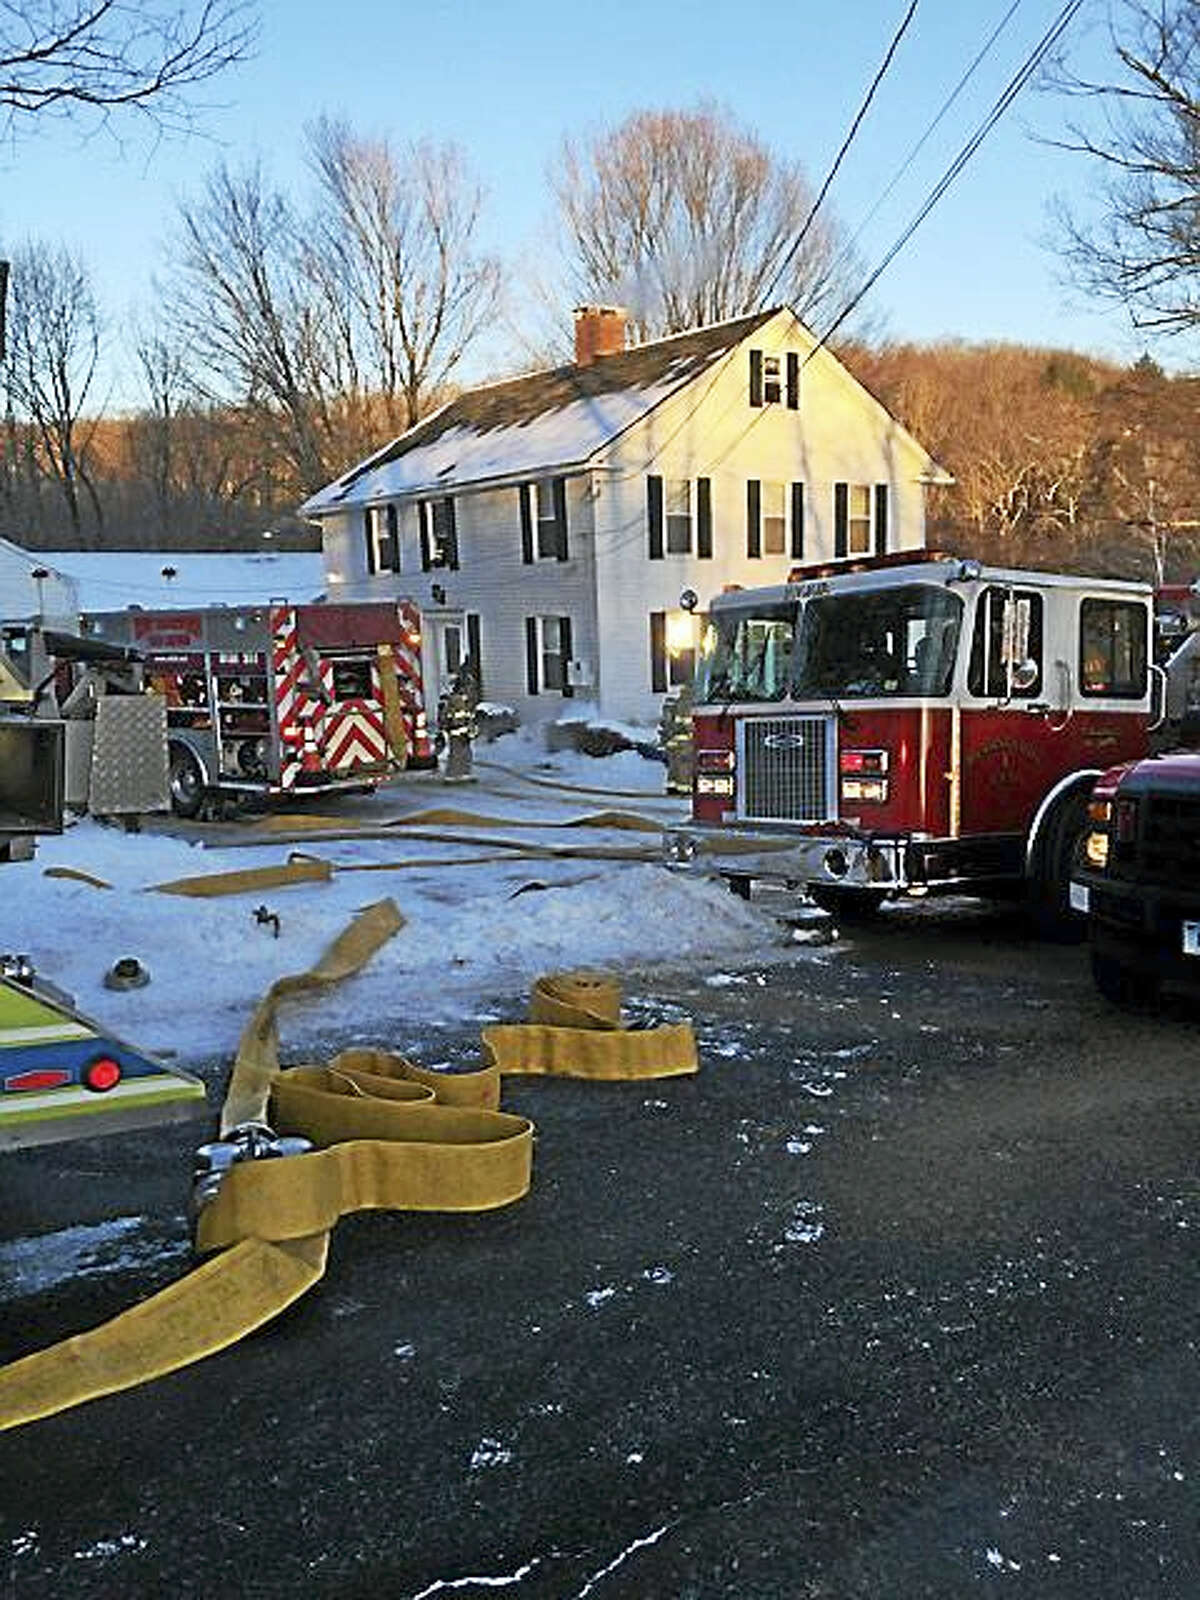 CONTRIBUTED PHOTO — PLEASANT VALLEY FIRE DEPT. A house fire Sunday at 87 West Hill Road is believed to have started when a resident tried to thaw frozen pipes with a heat gun, fire officials said.